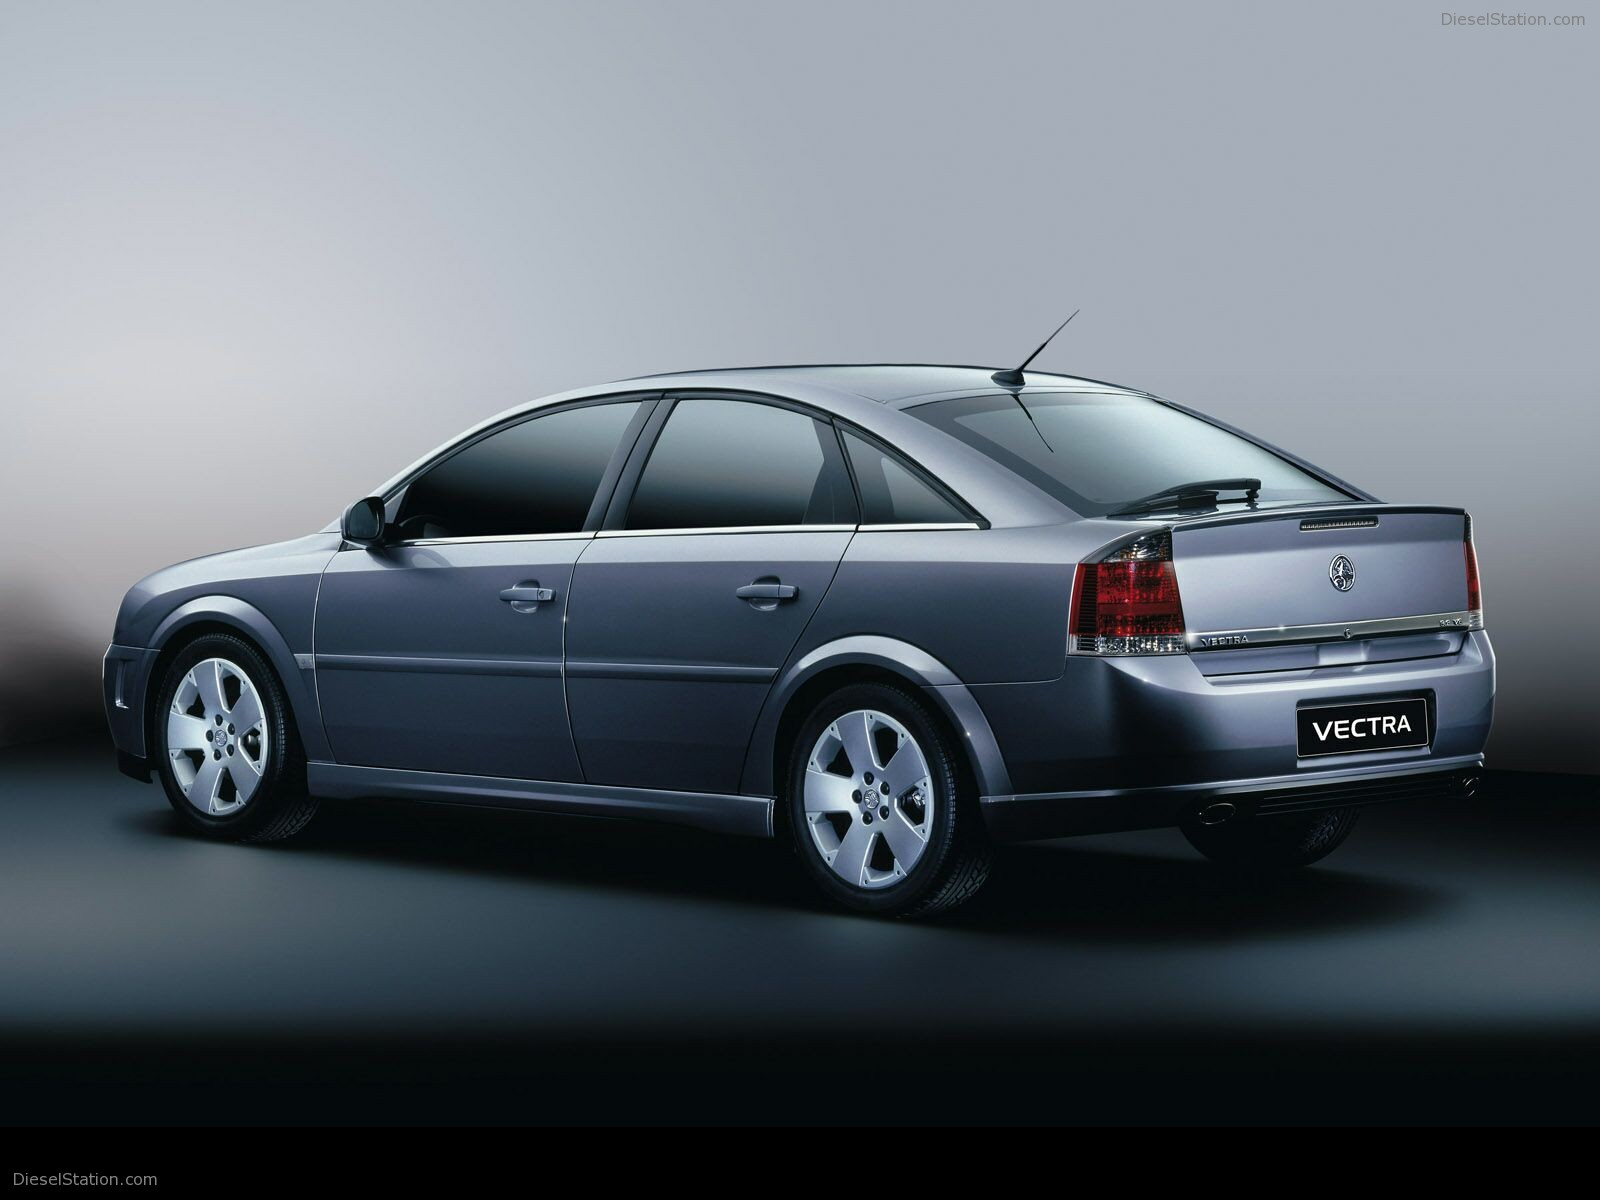 holden vectra hatcback (b) 2002 wallpaper